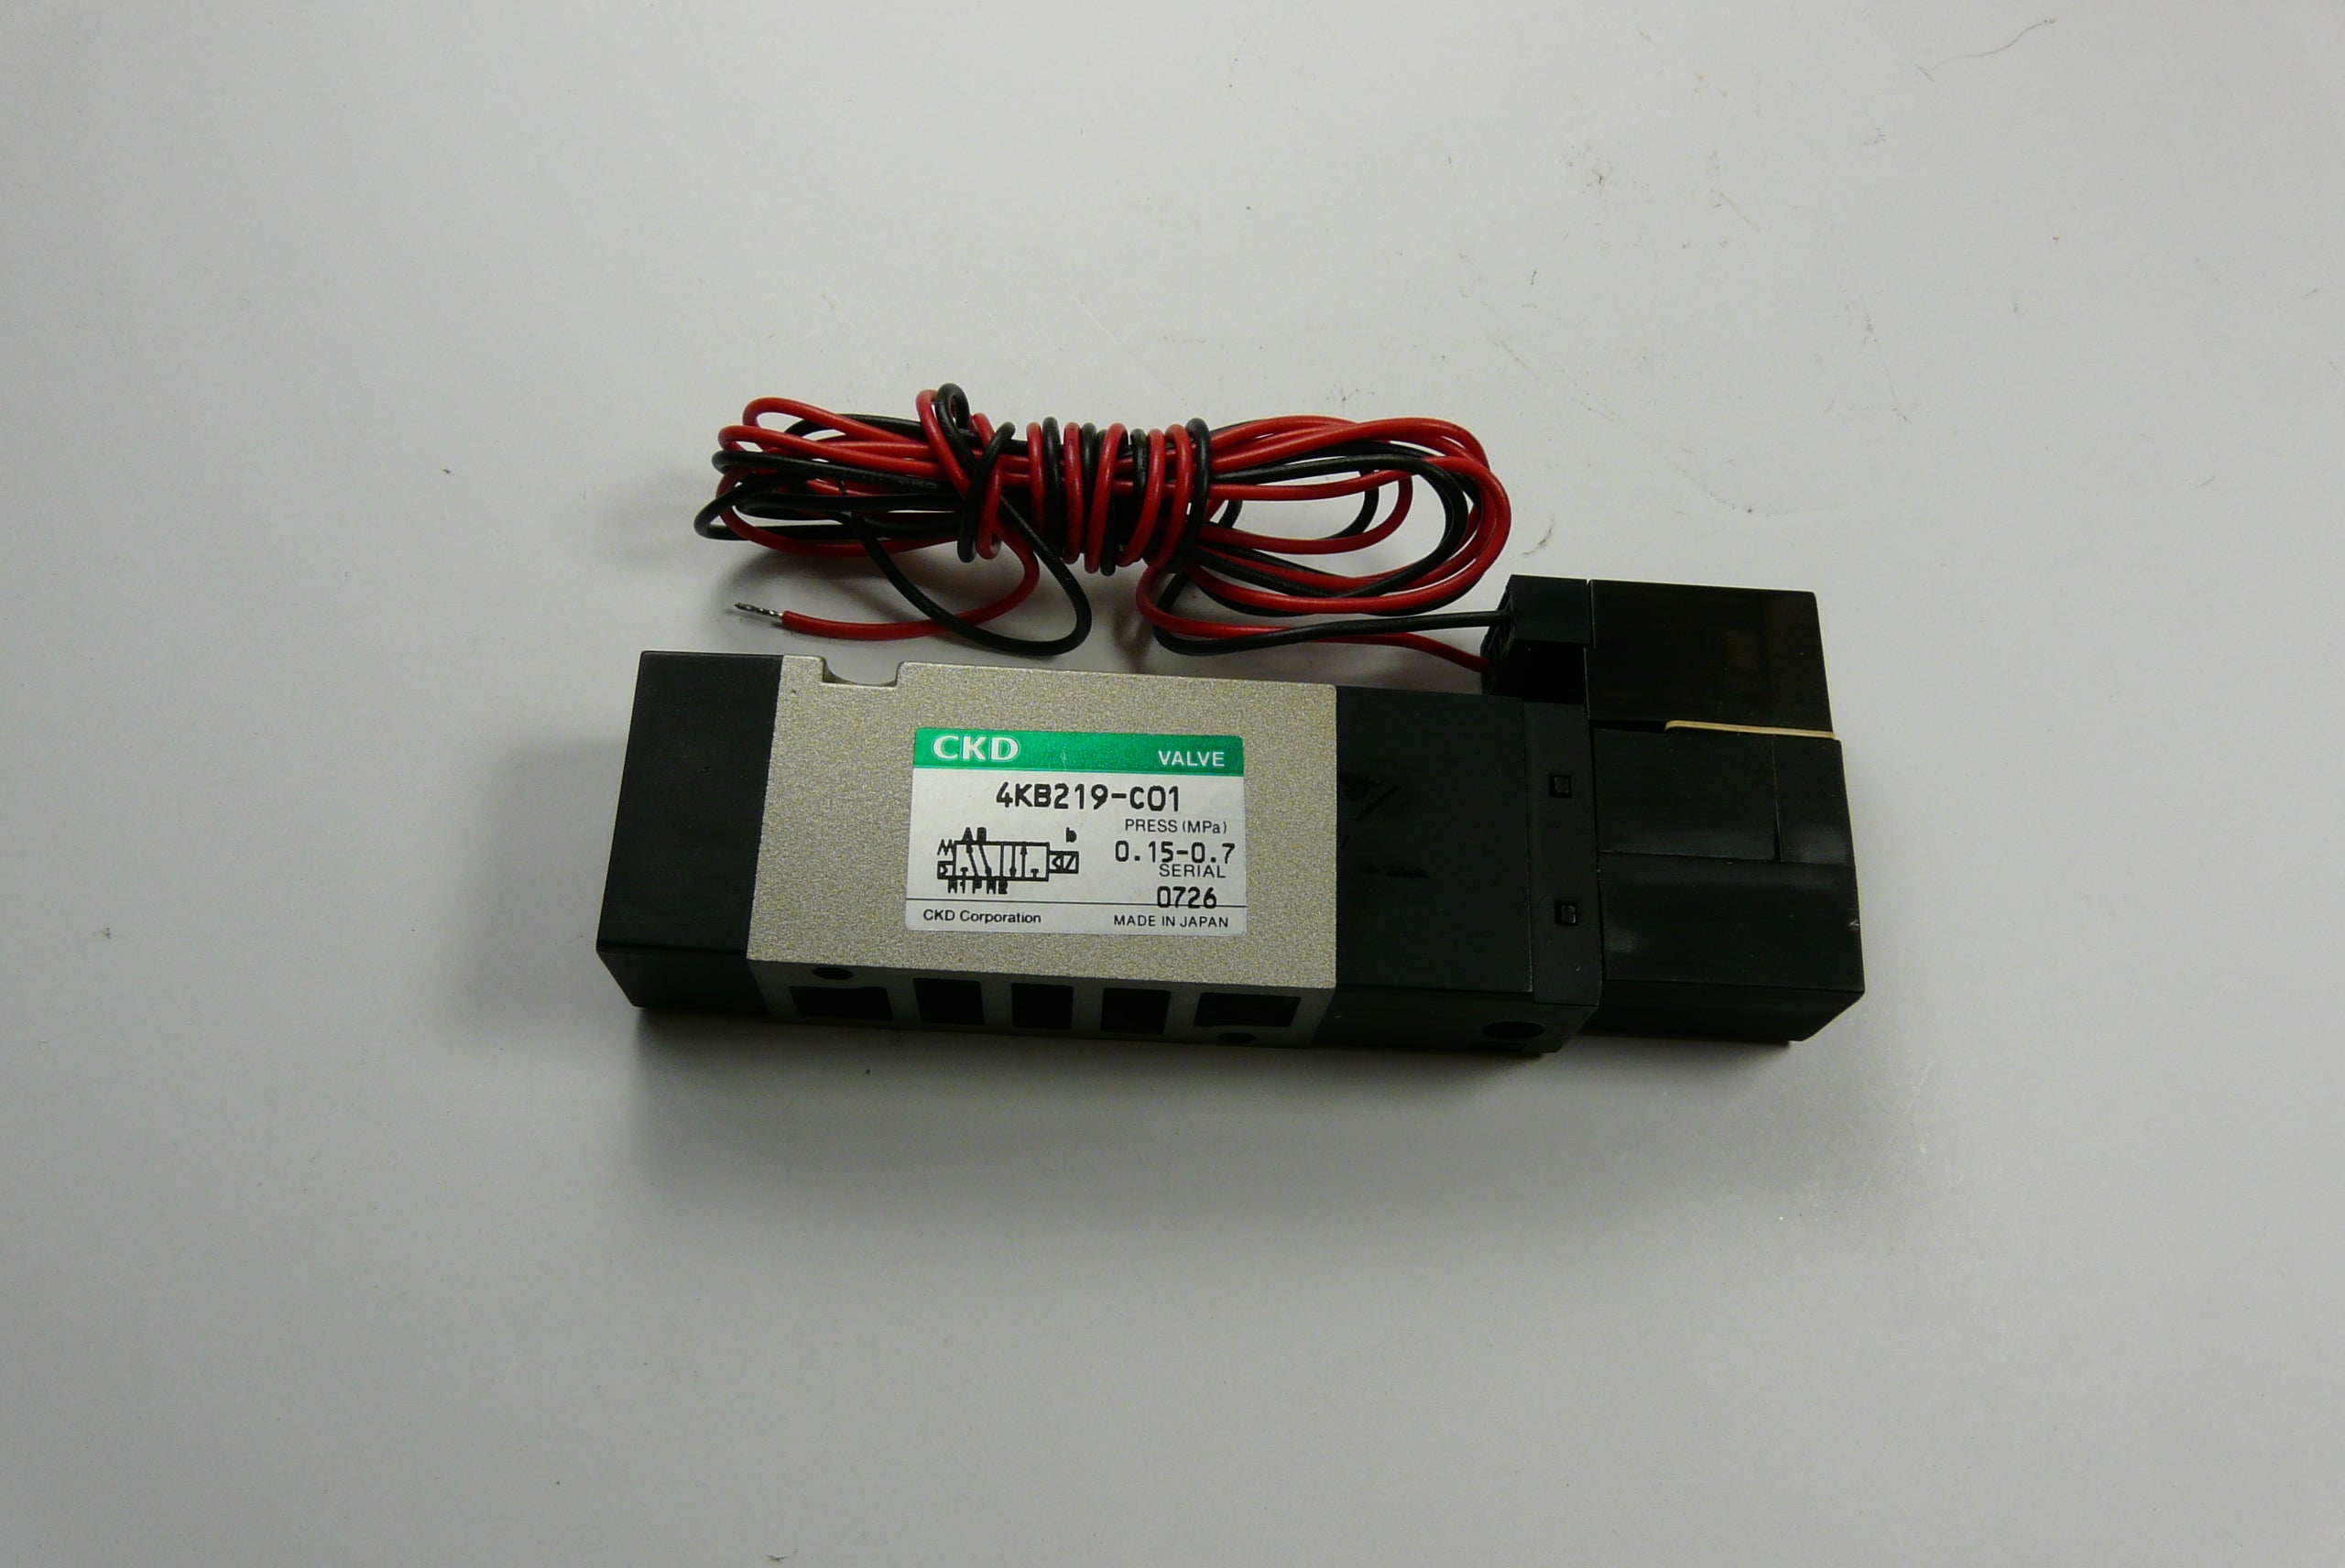 CKD Air Solenoid Part# CKD4KB219-C01